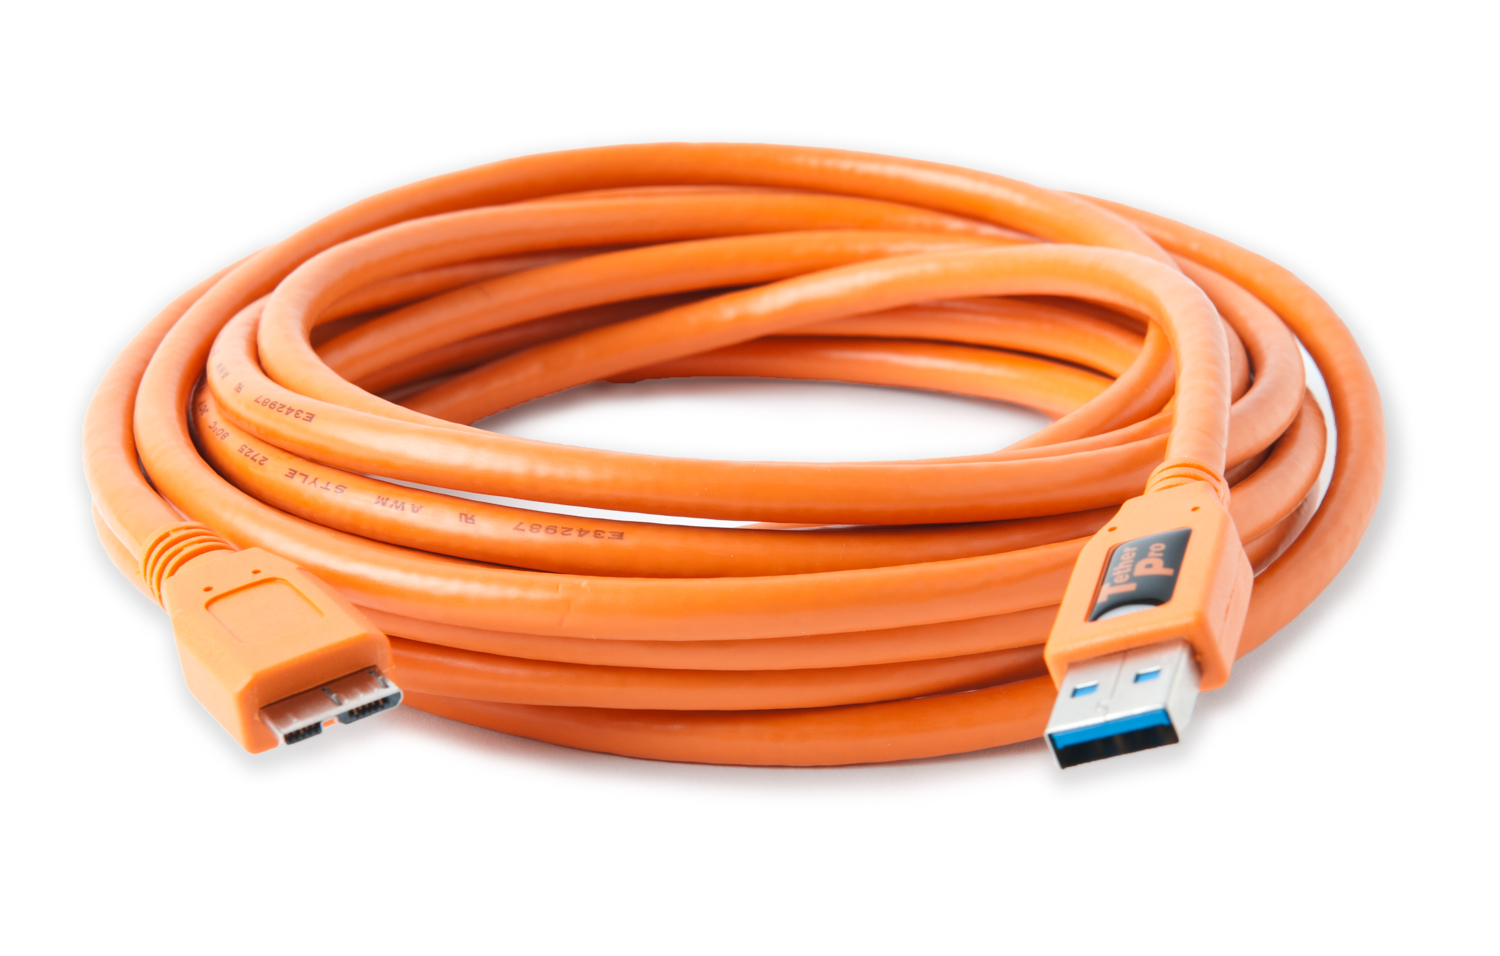 TetherTools Cables